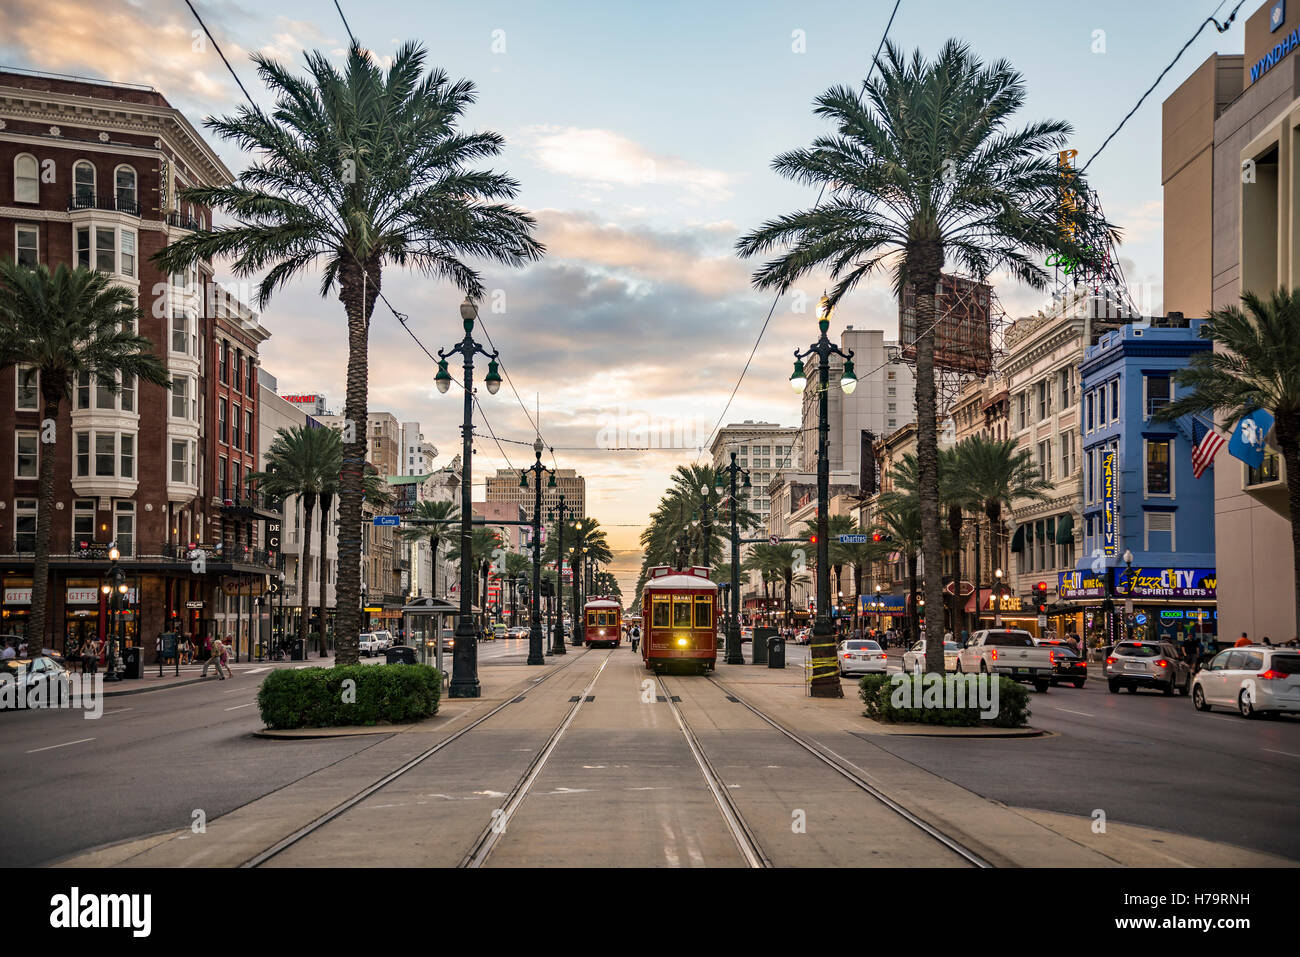 NEW ORLEANS - OCTOBER 10, 2016: view of the famous Canal Street on October 10, 2016 in New Orleans, LA - Stock Image